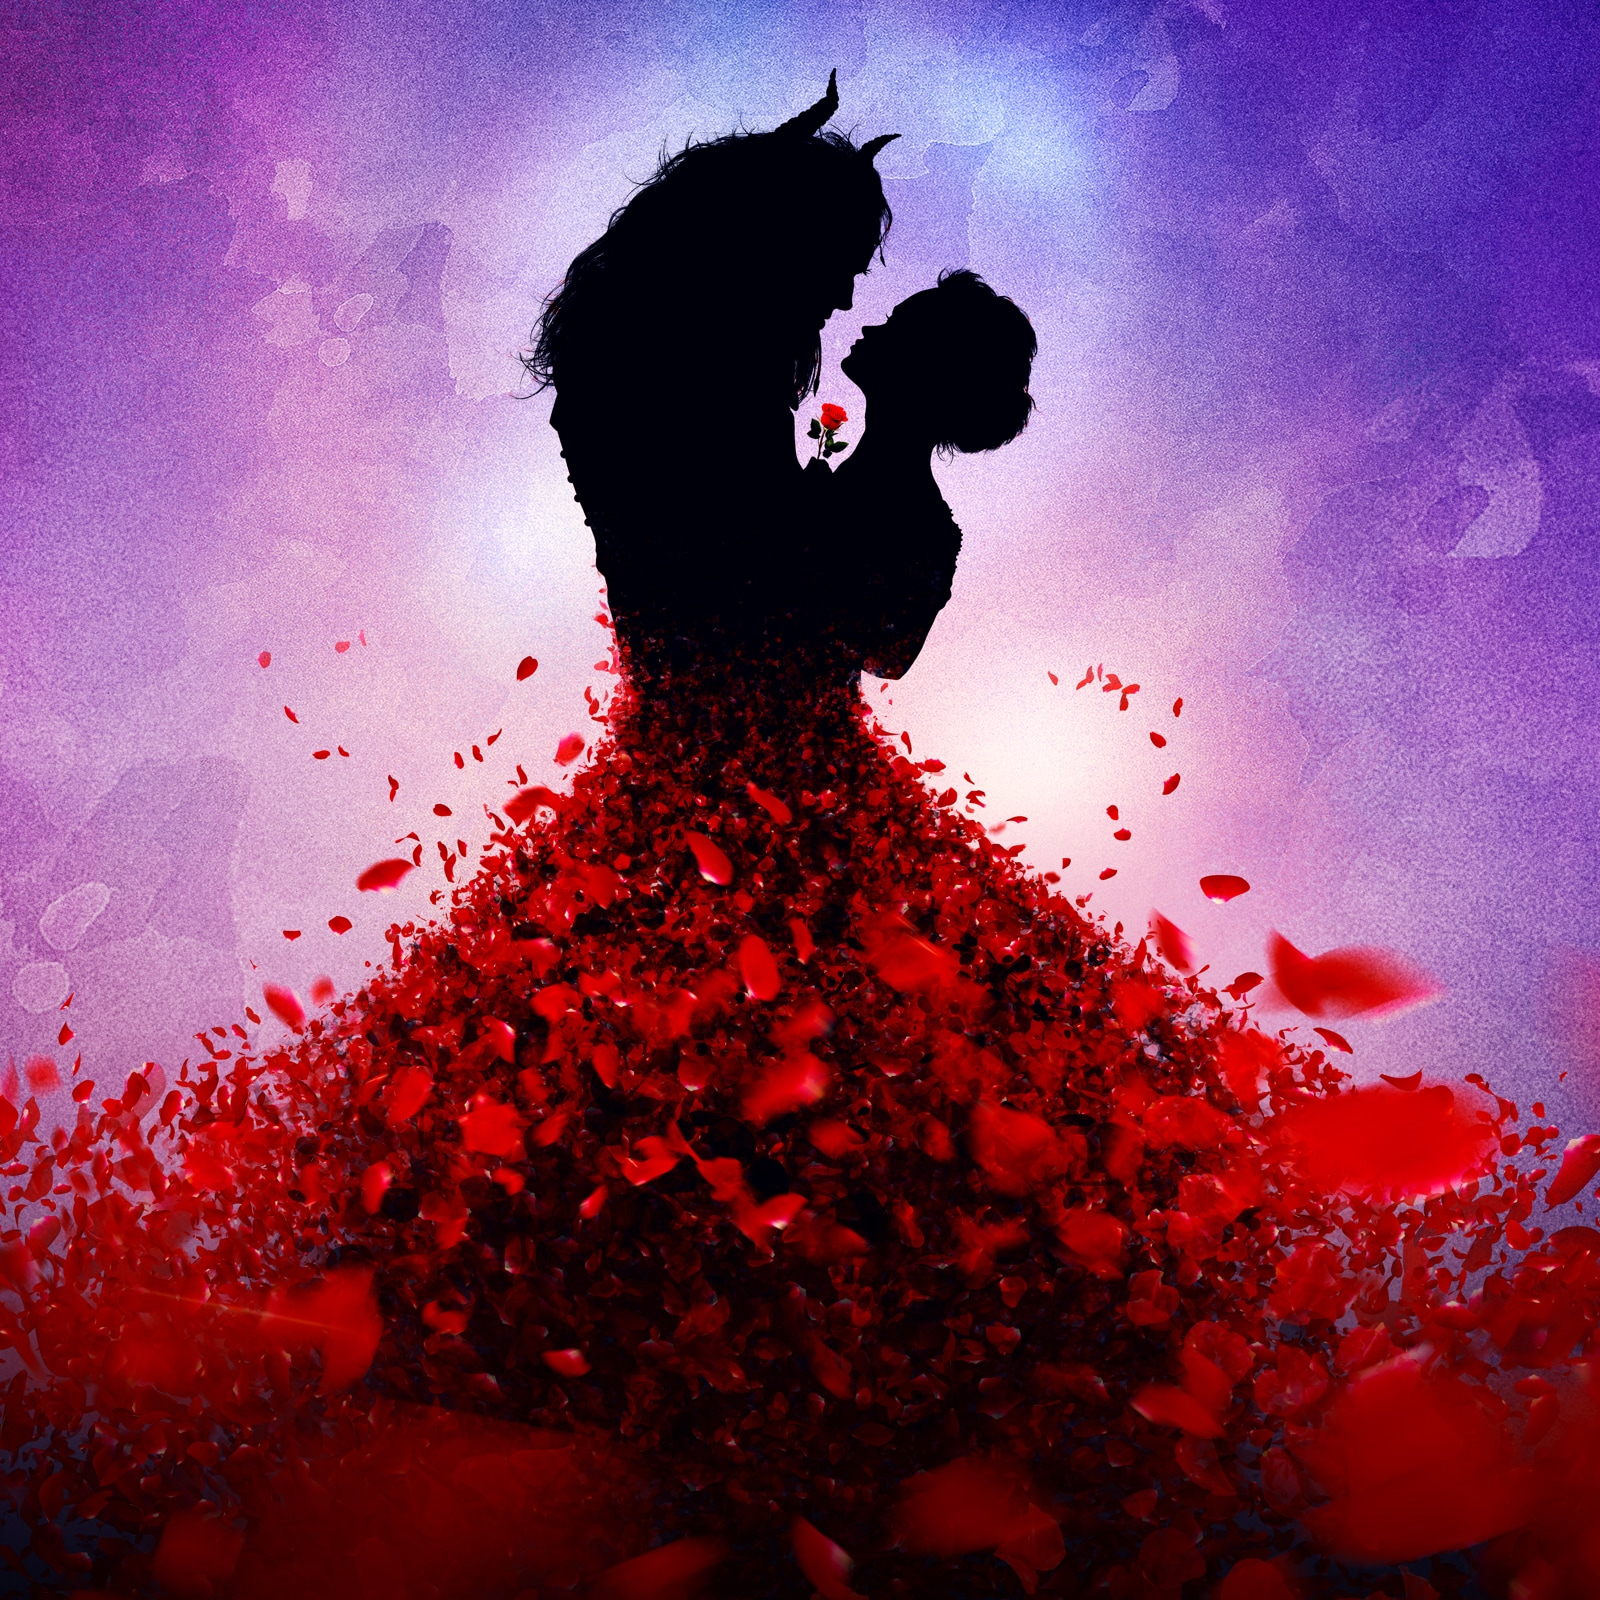 Silhouette of Belle and the Beast dancing, with rose petals on Belle's dress